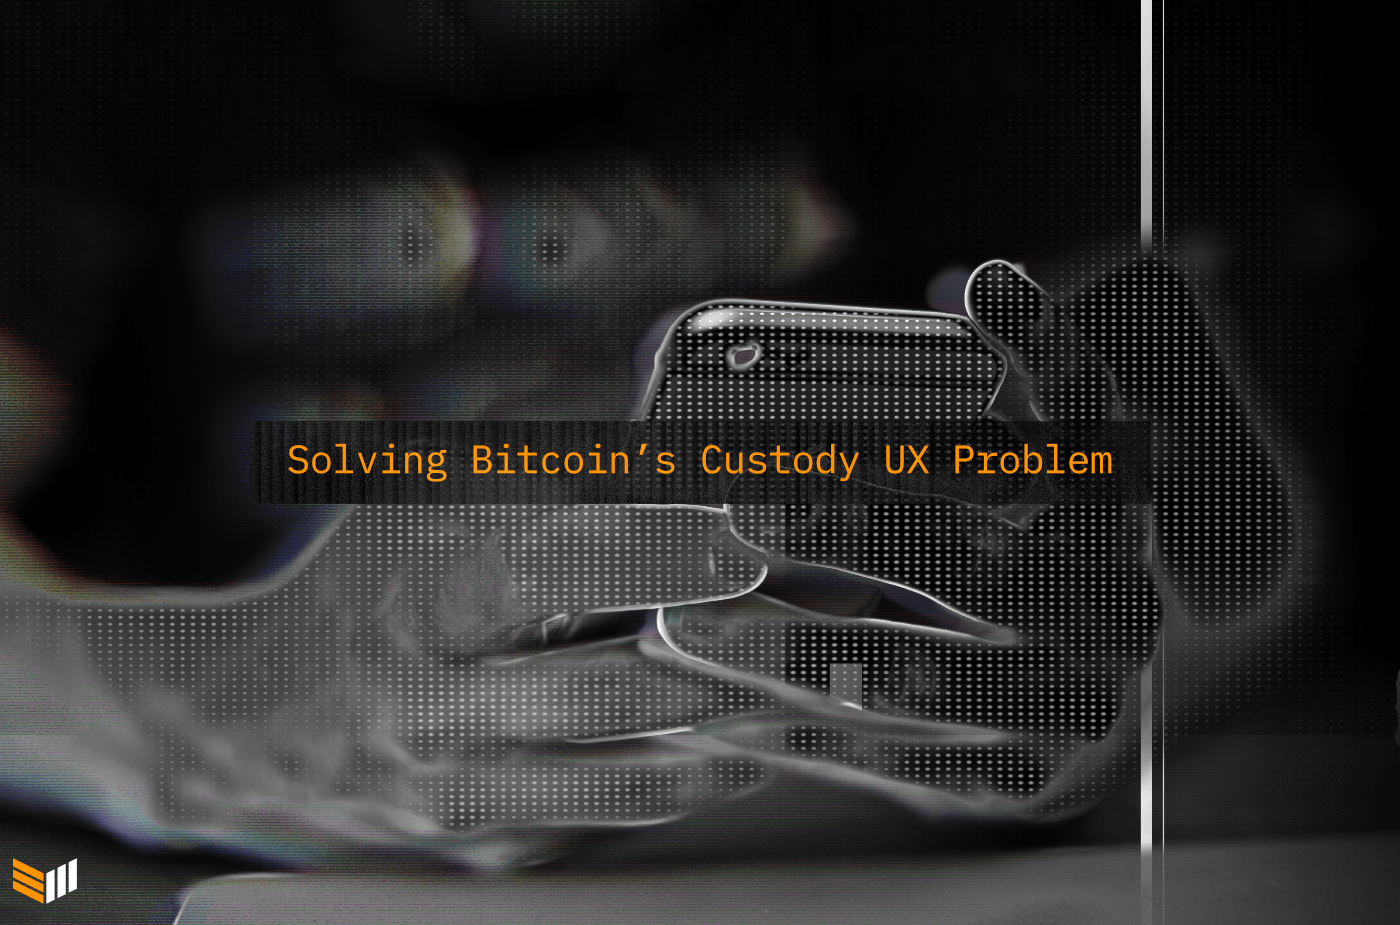 We Must Solve Bitcoin's Custody UX Problem